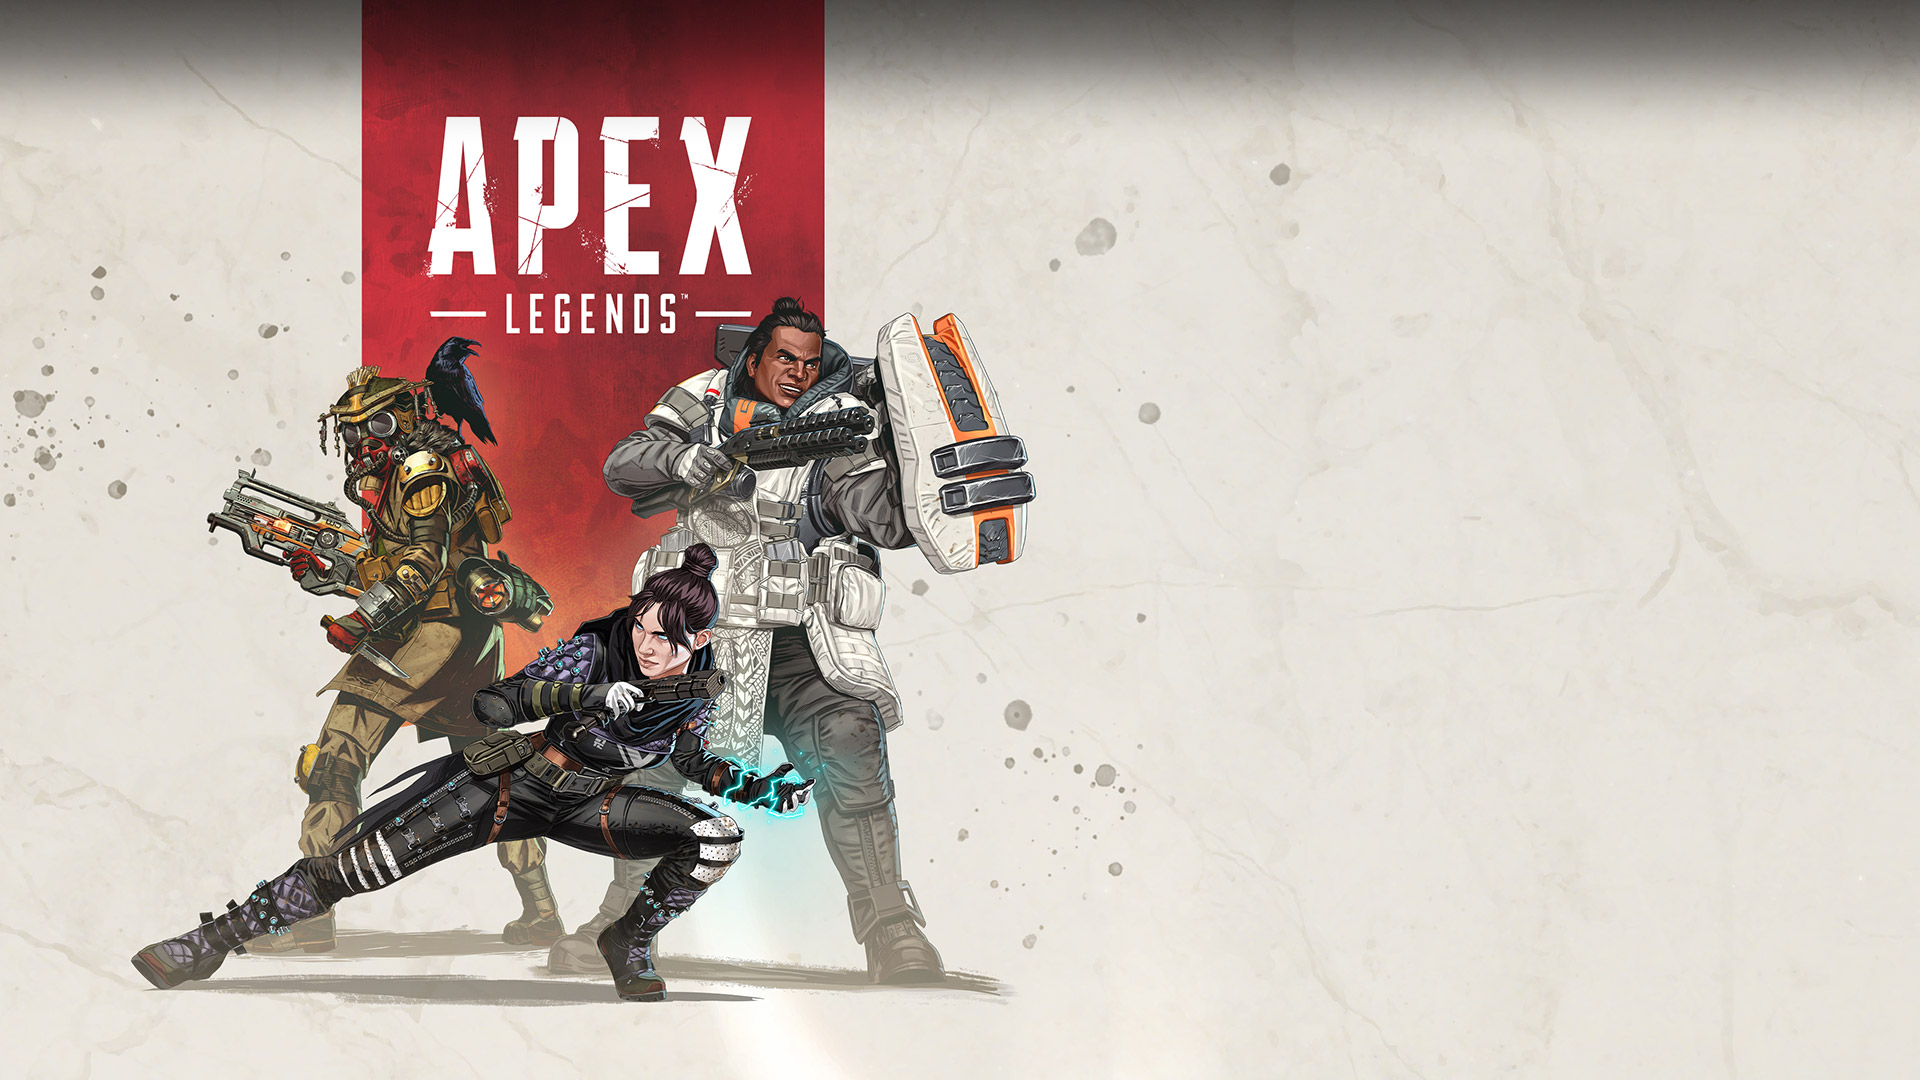 Apex Legends, three character classes strike battle poses.